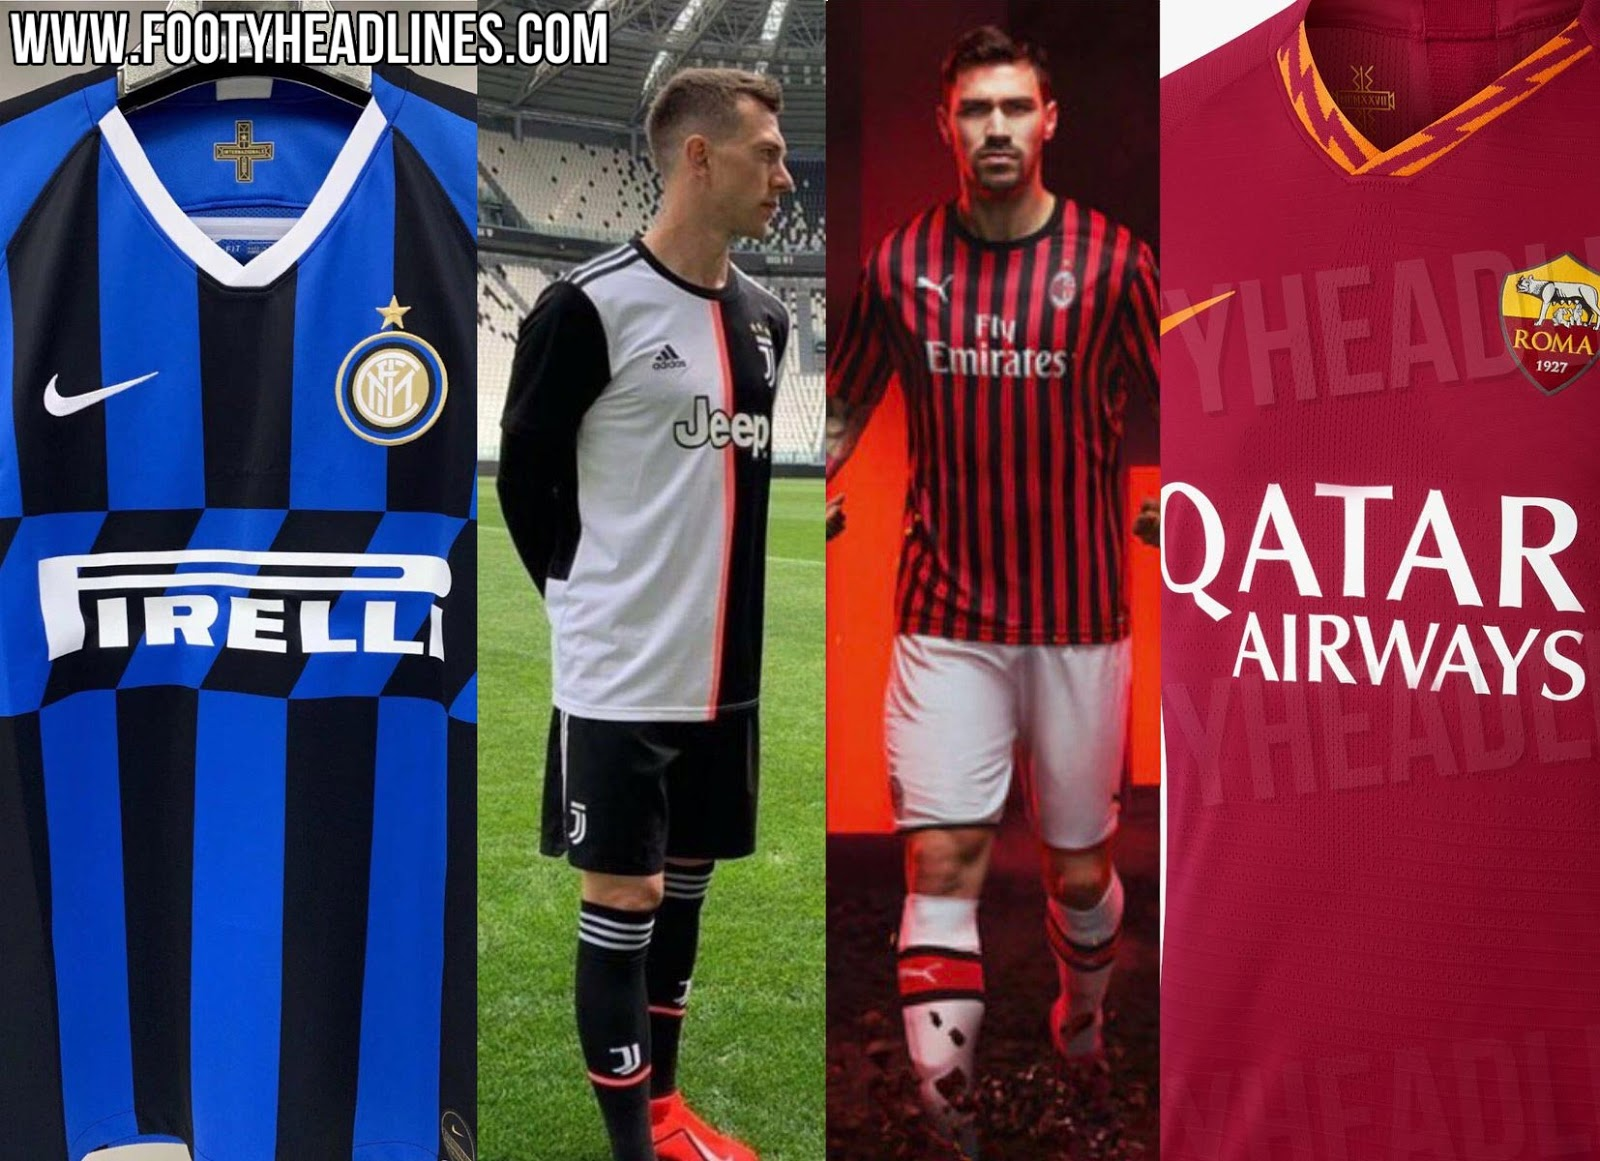 Juventus, AC Milan, Inter & Roma - All Serie A 2019-20 Home